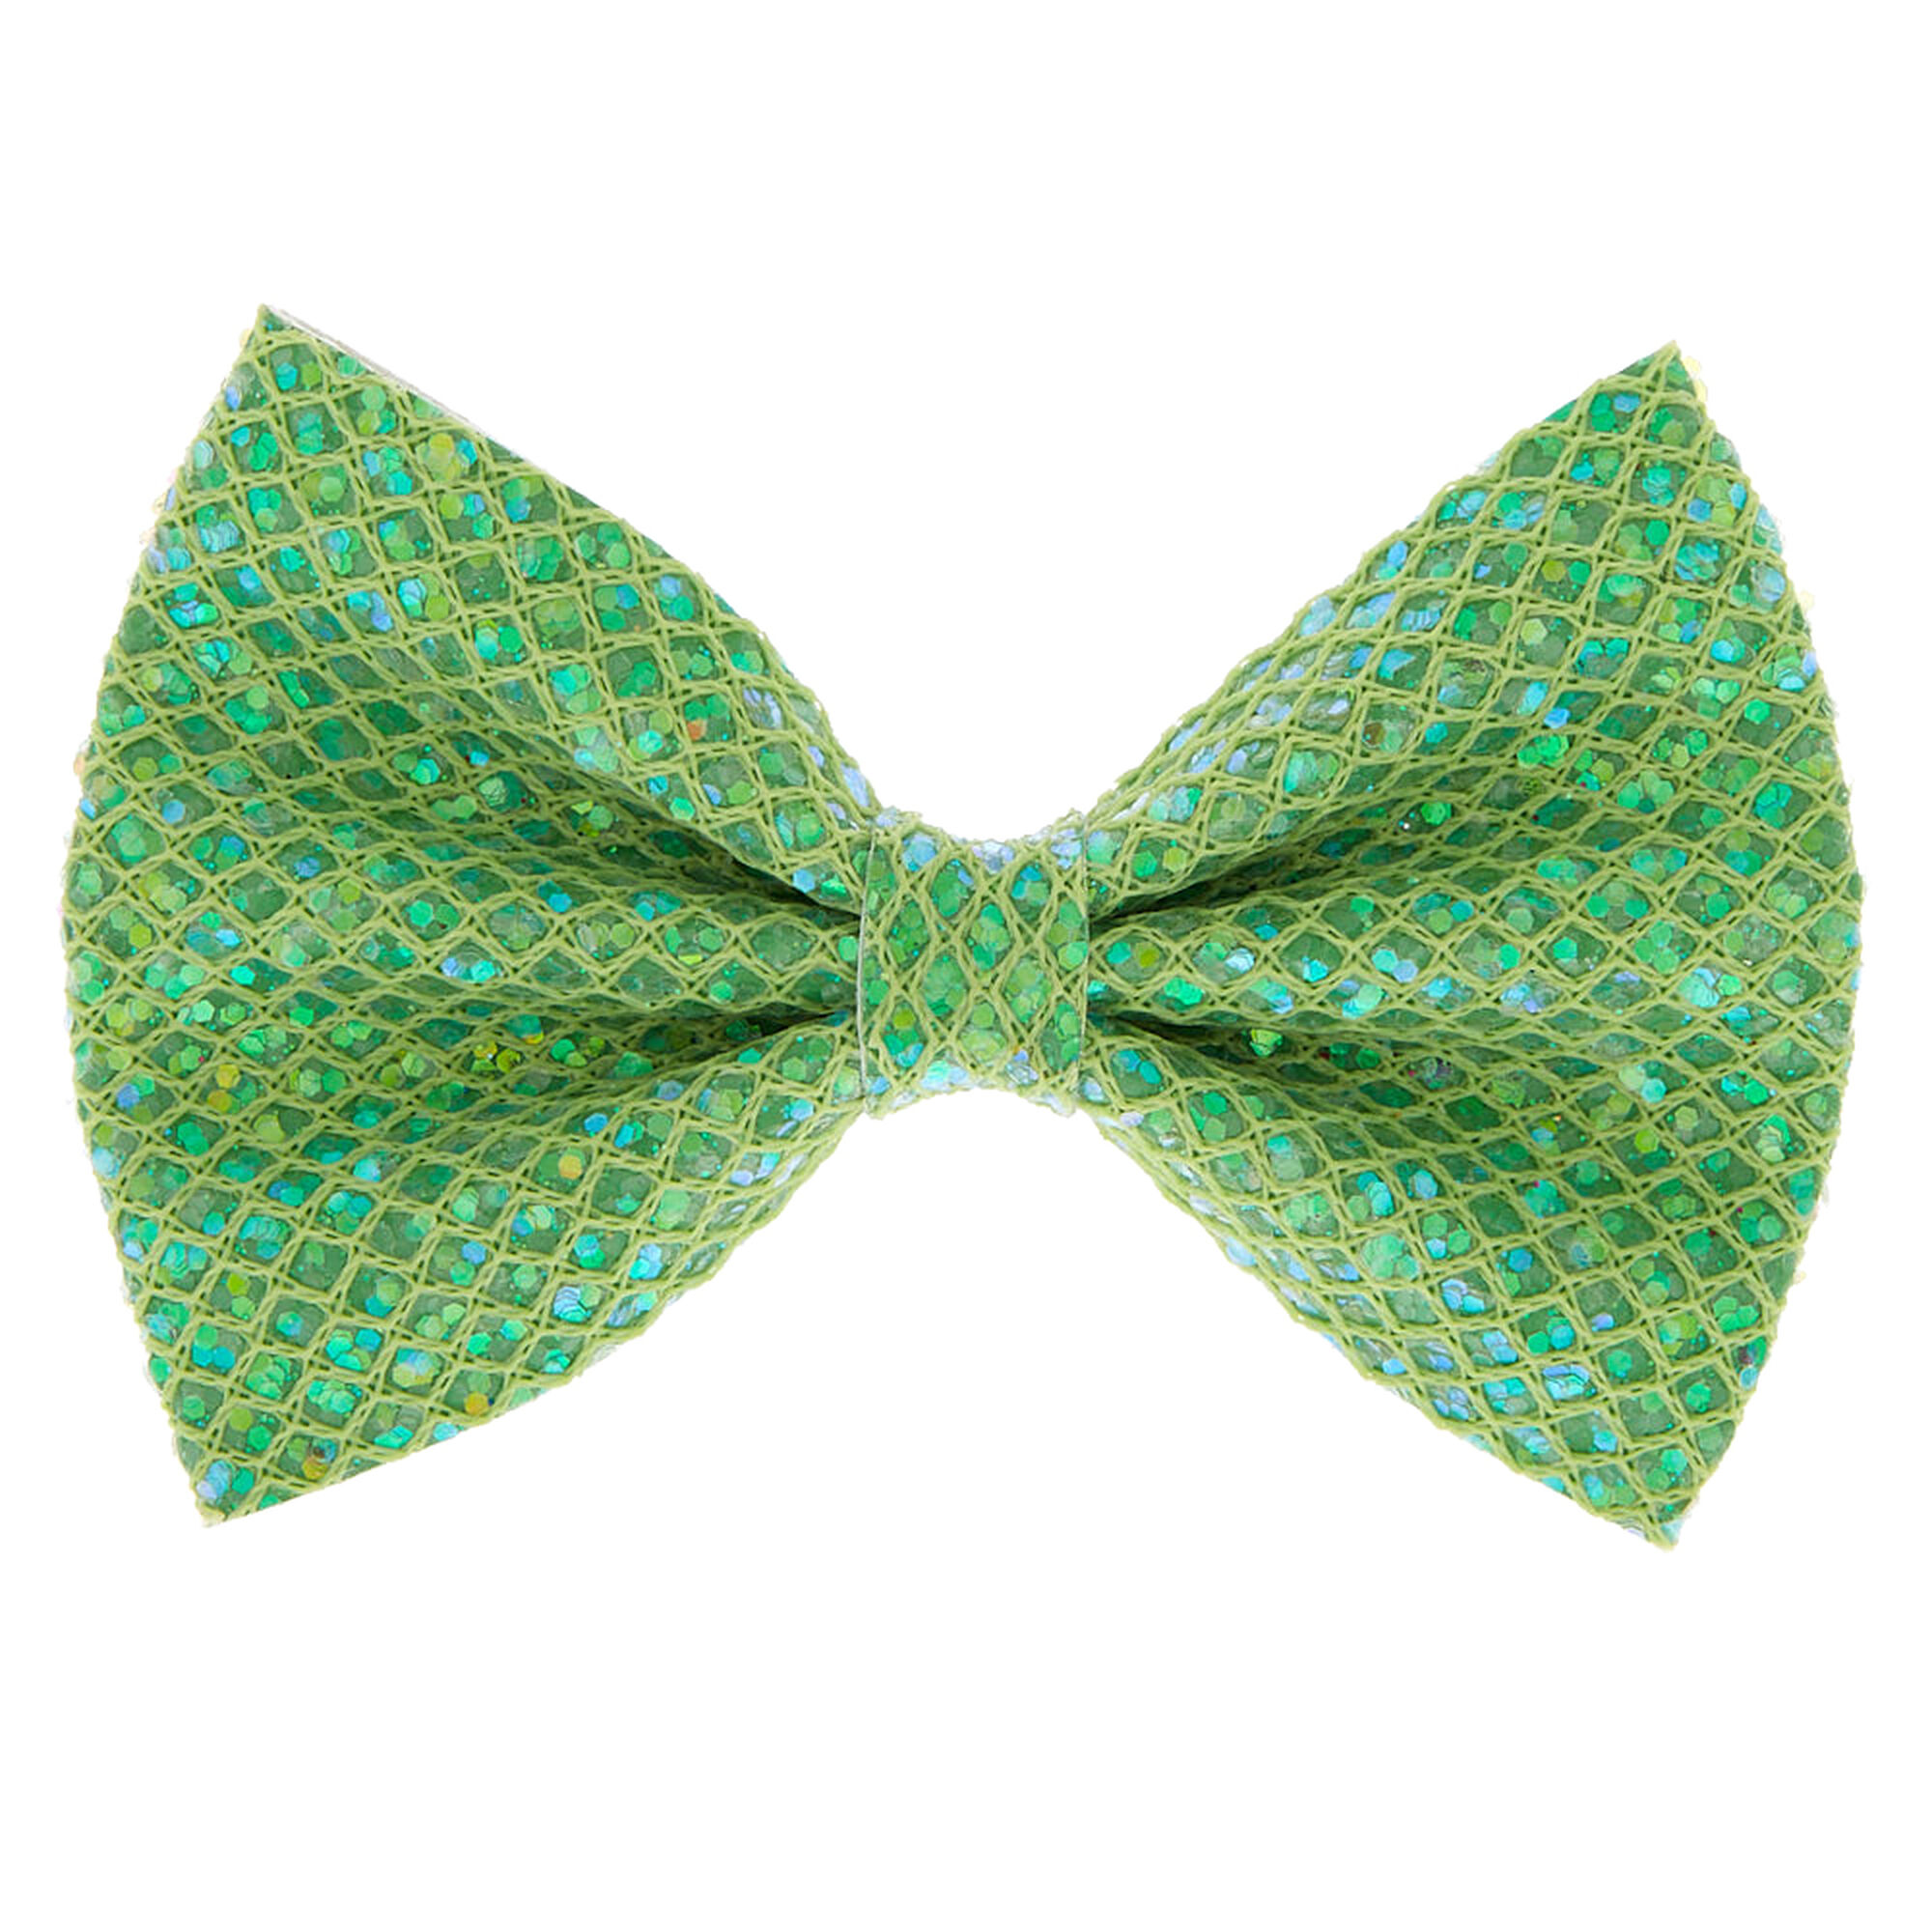 White with Green Glitter Hair Bow